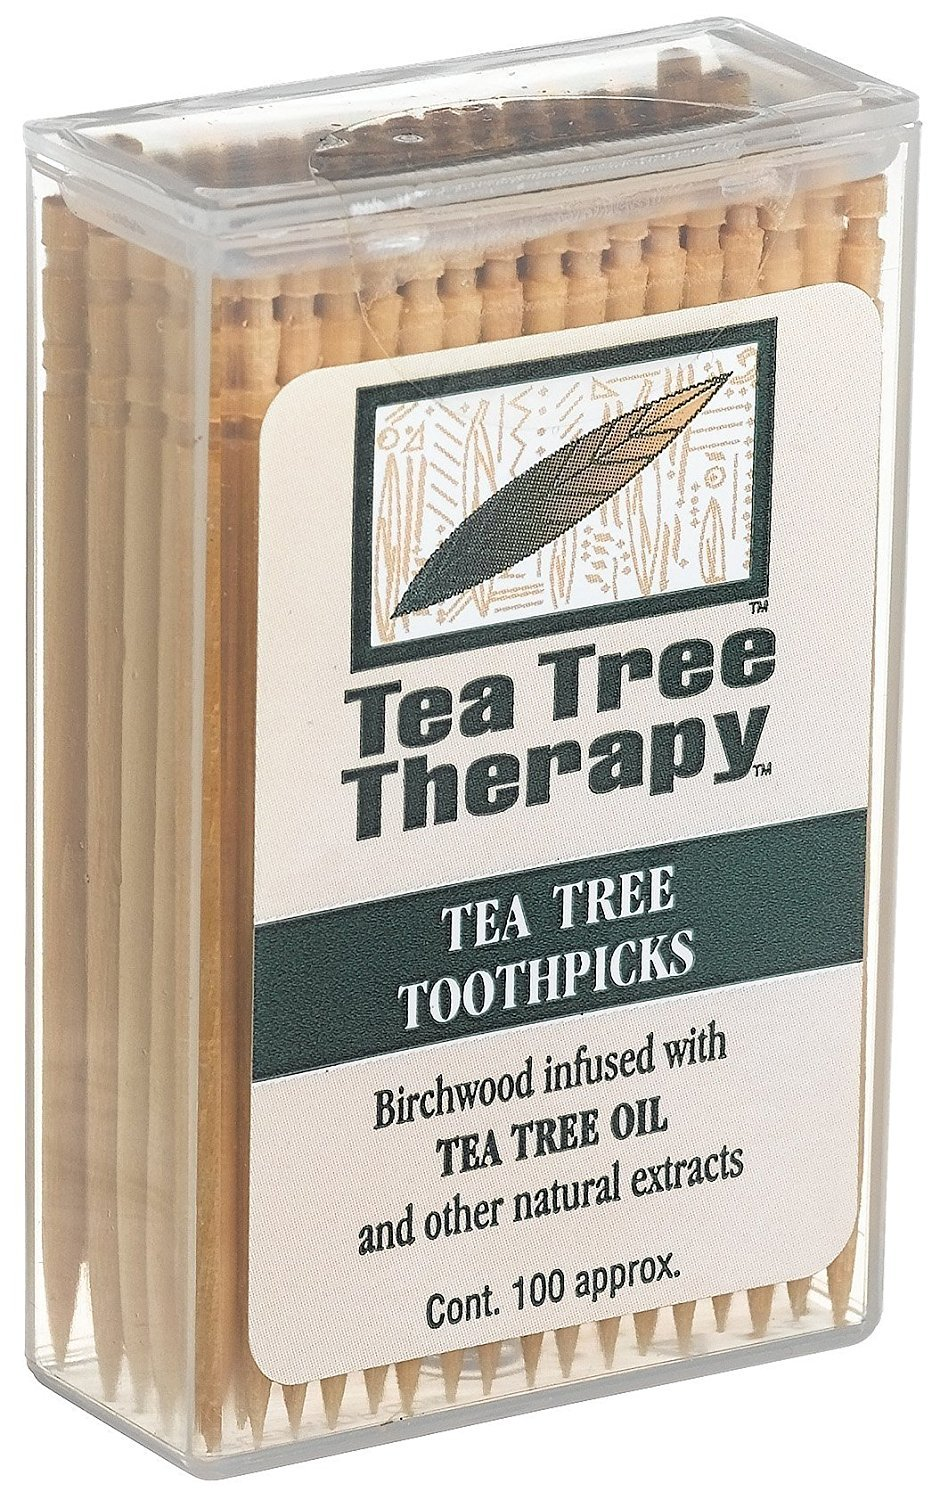 Tea Tree Therapy Toothpick Ttree And Mint